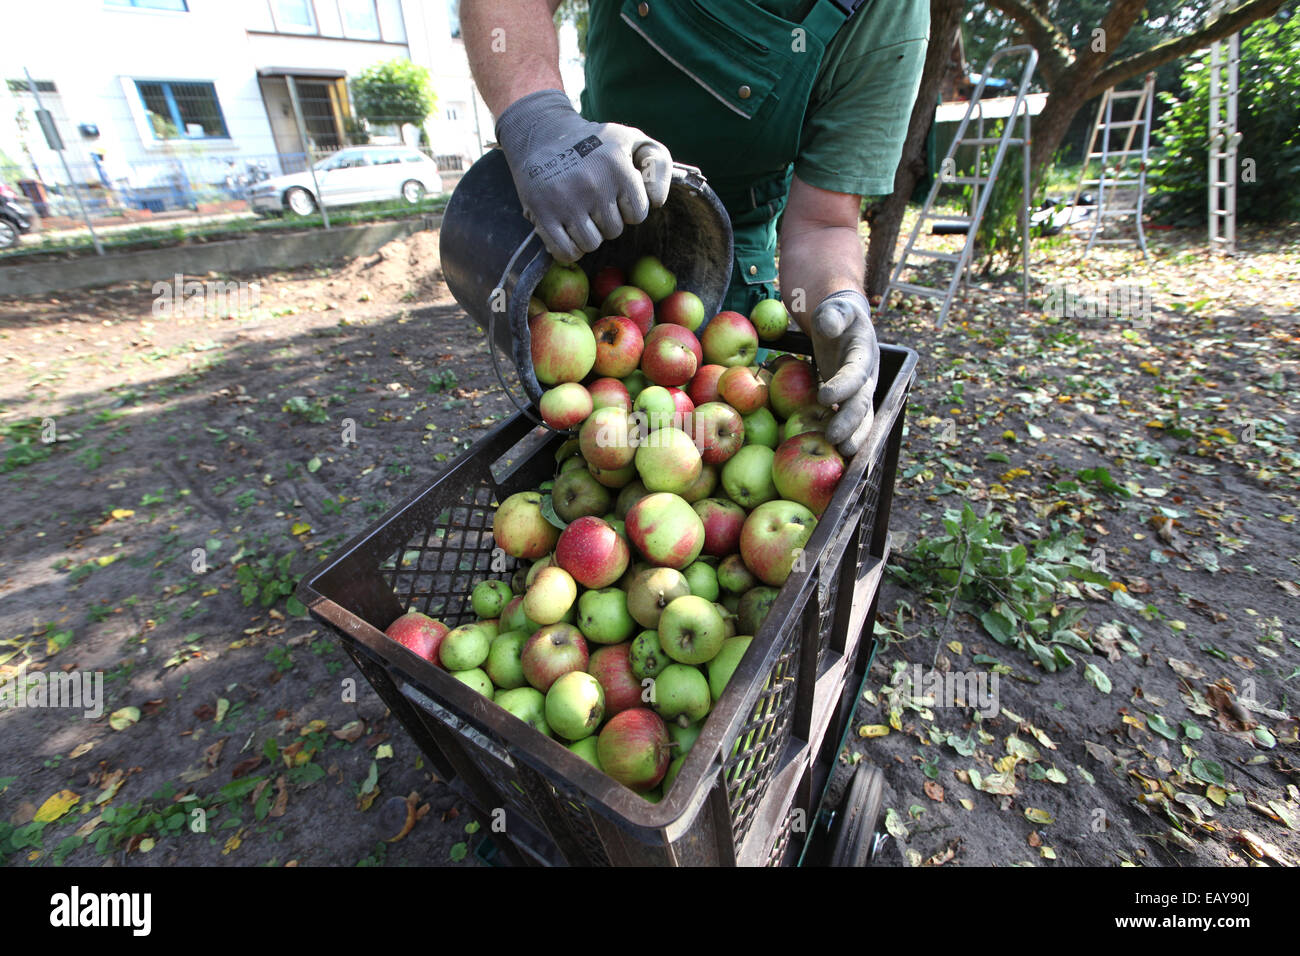 Close-up of a man gathering apples in an urban gardening project - Stock Image